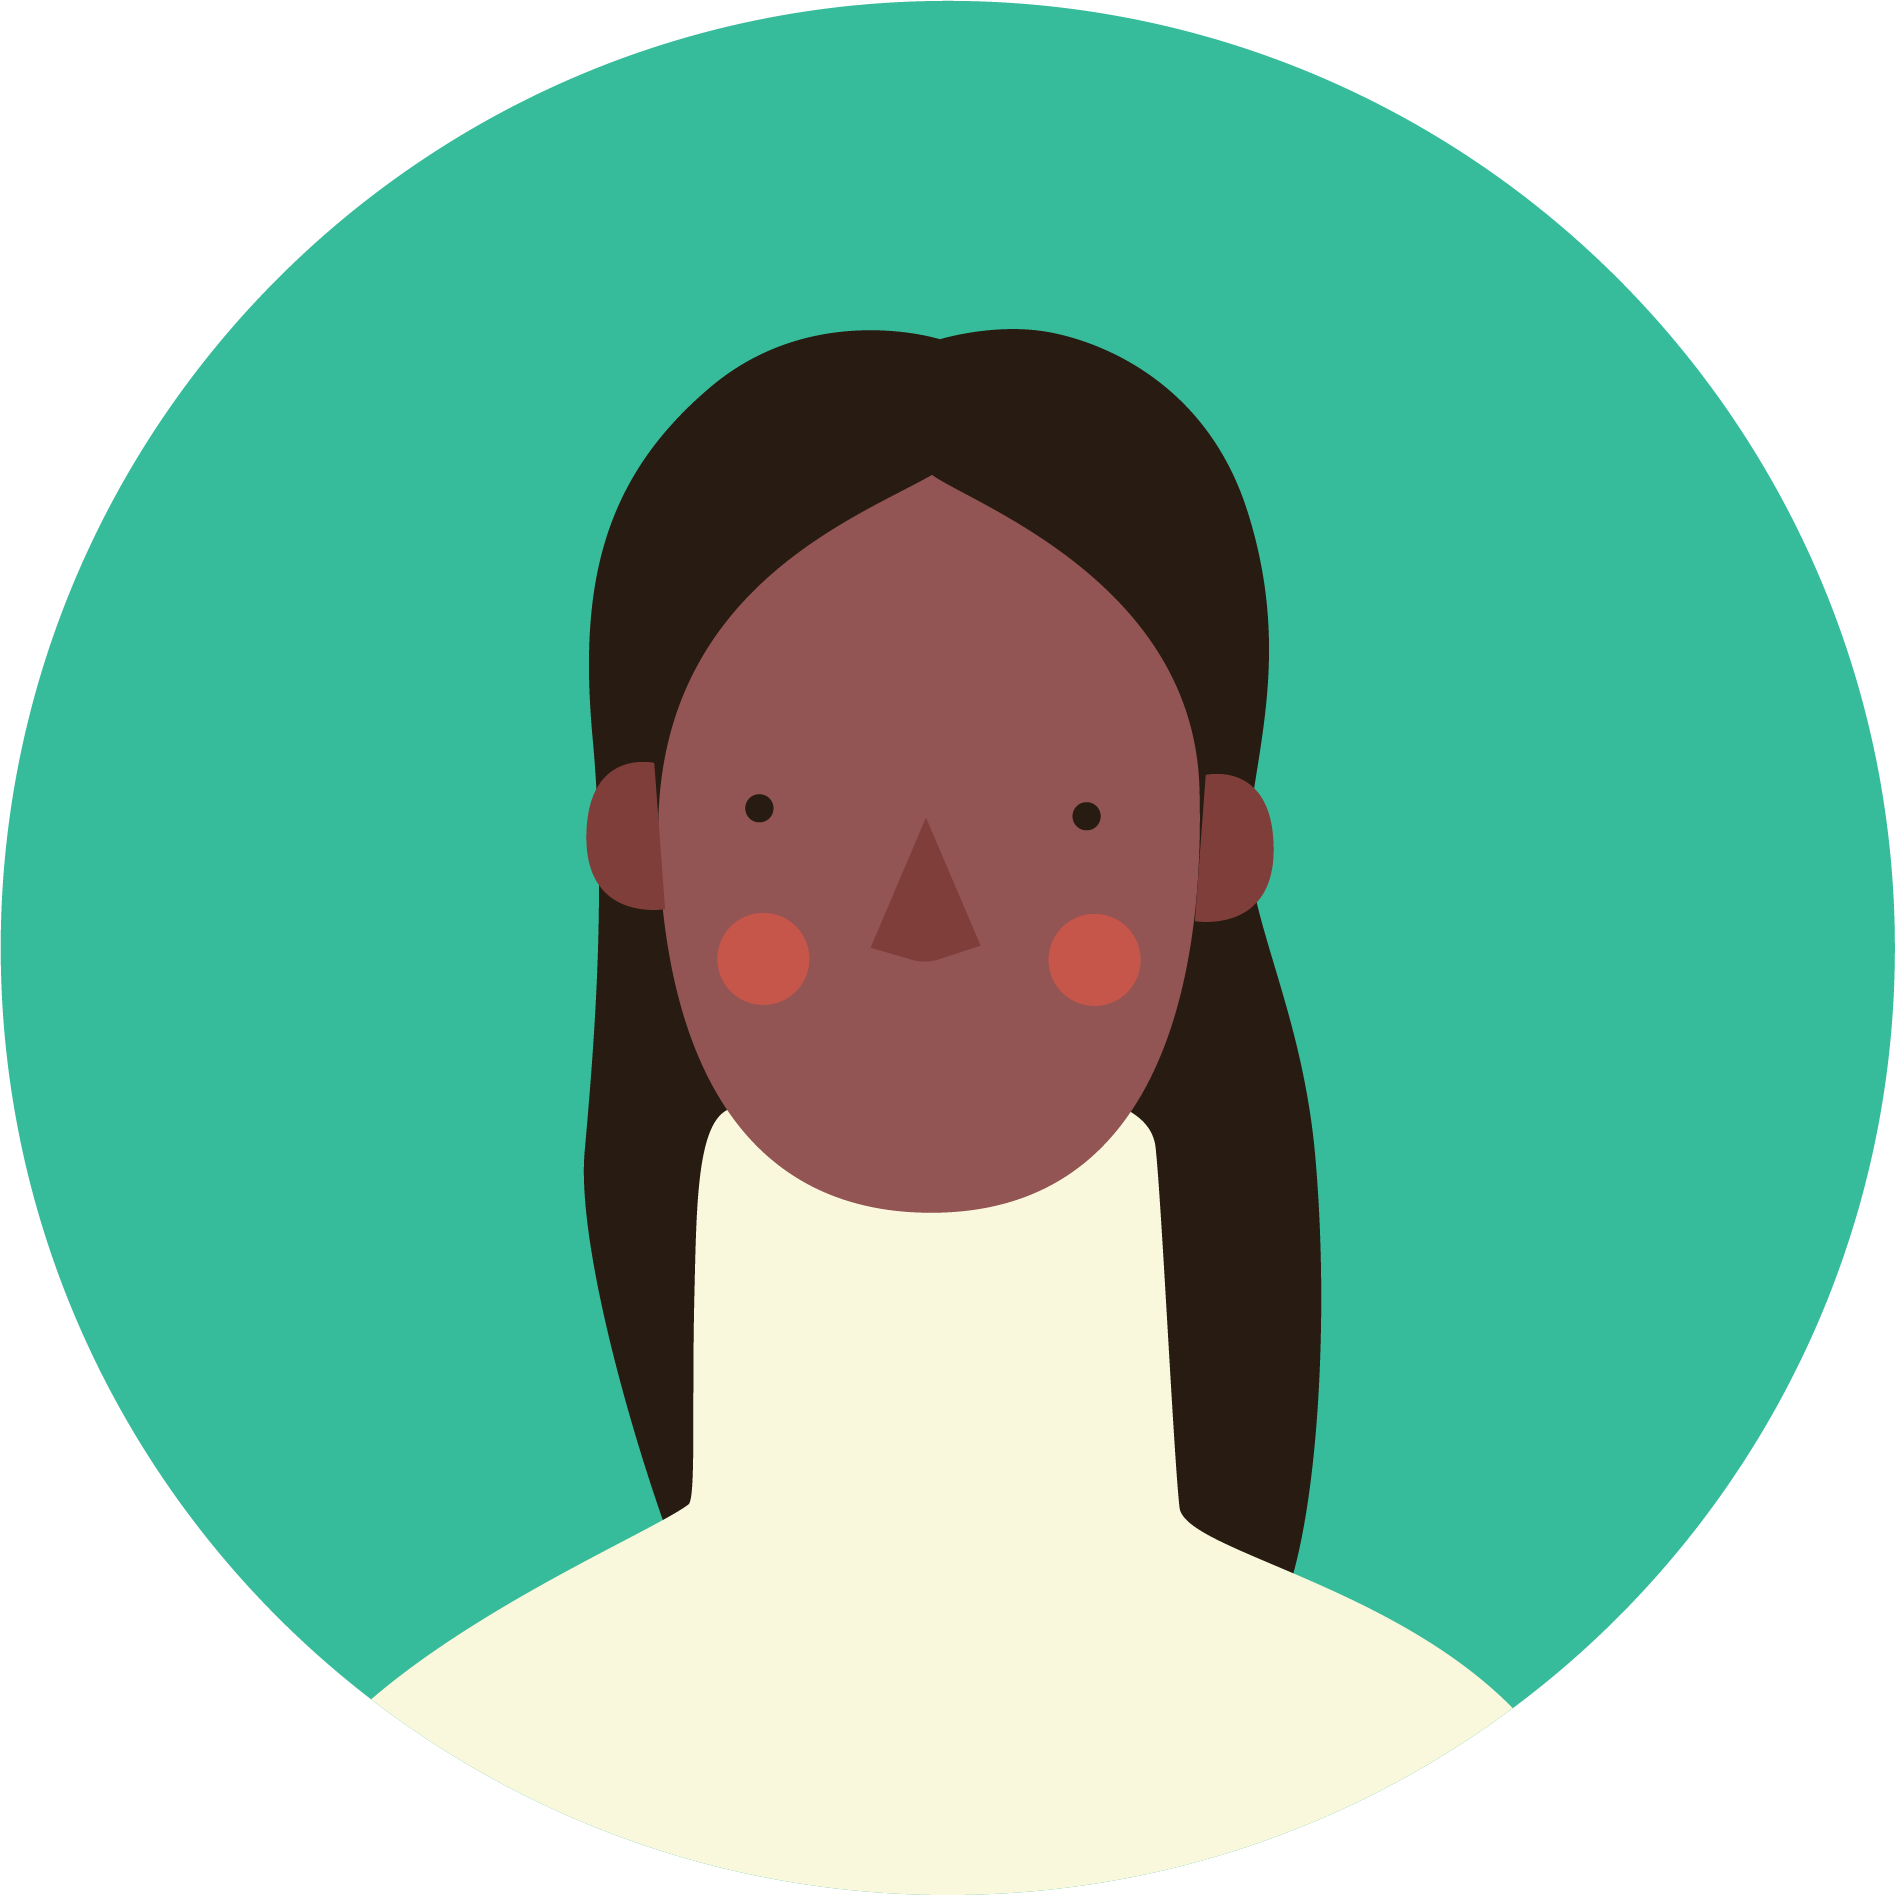 Illustration of an African American woman smiling